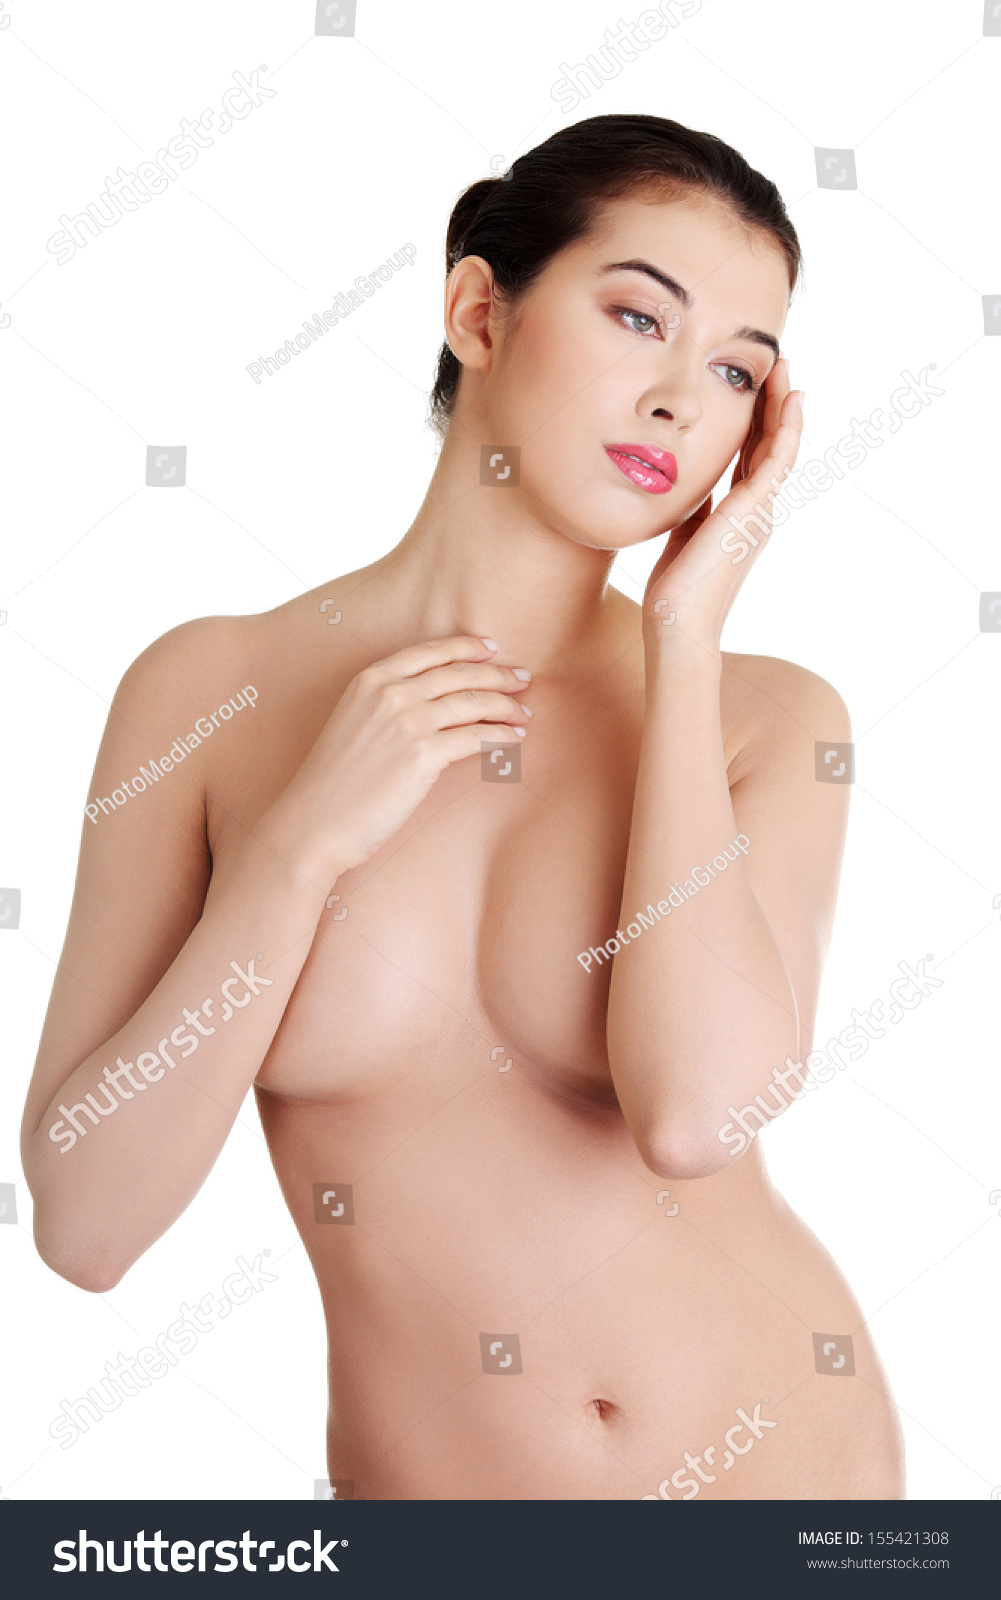 Busty muscular topless are